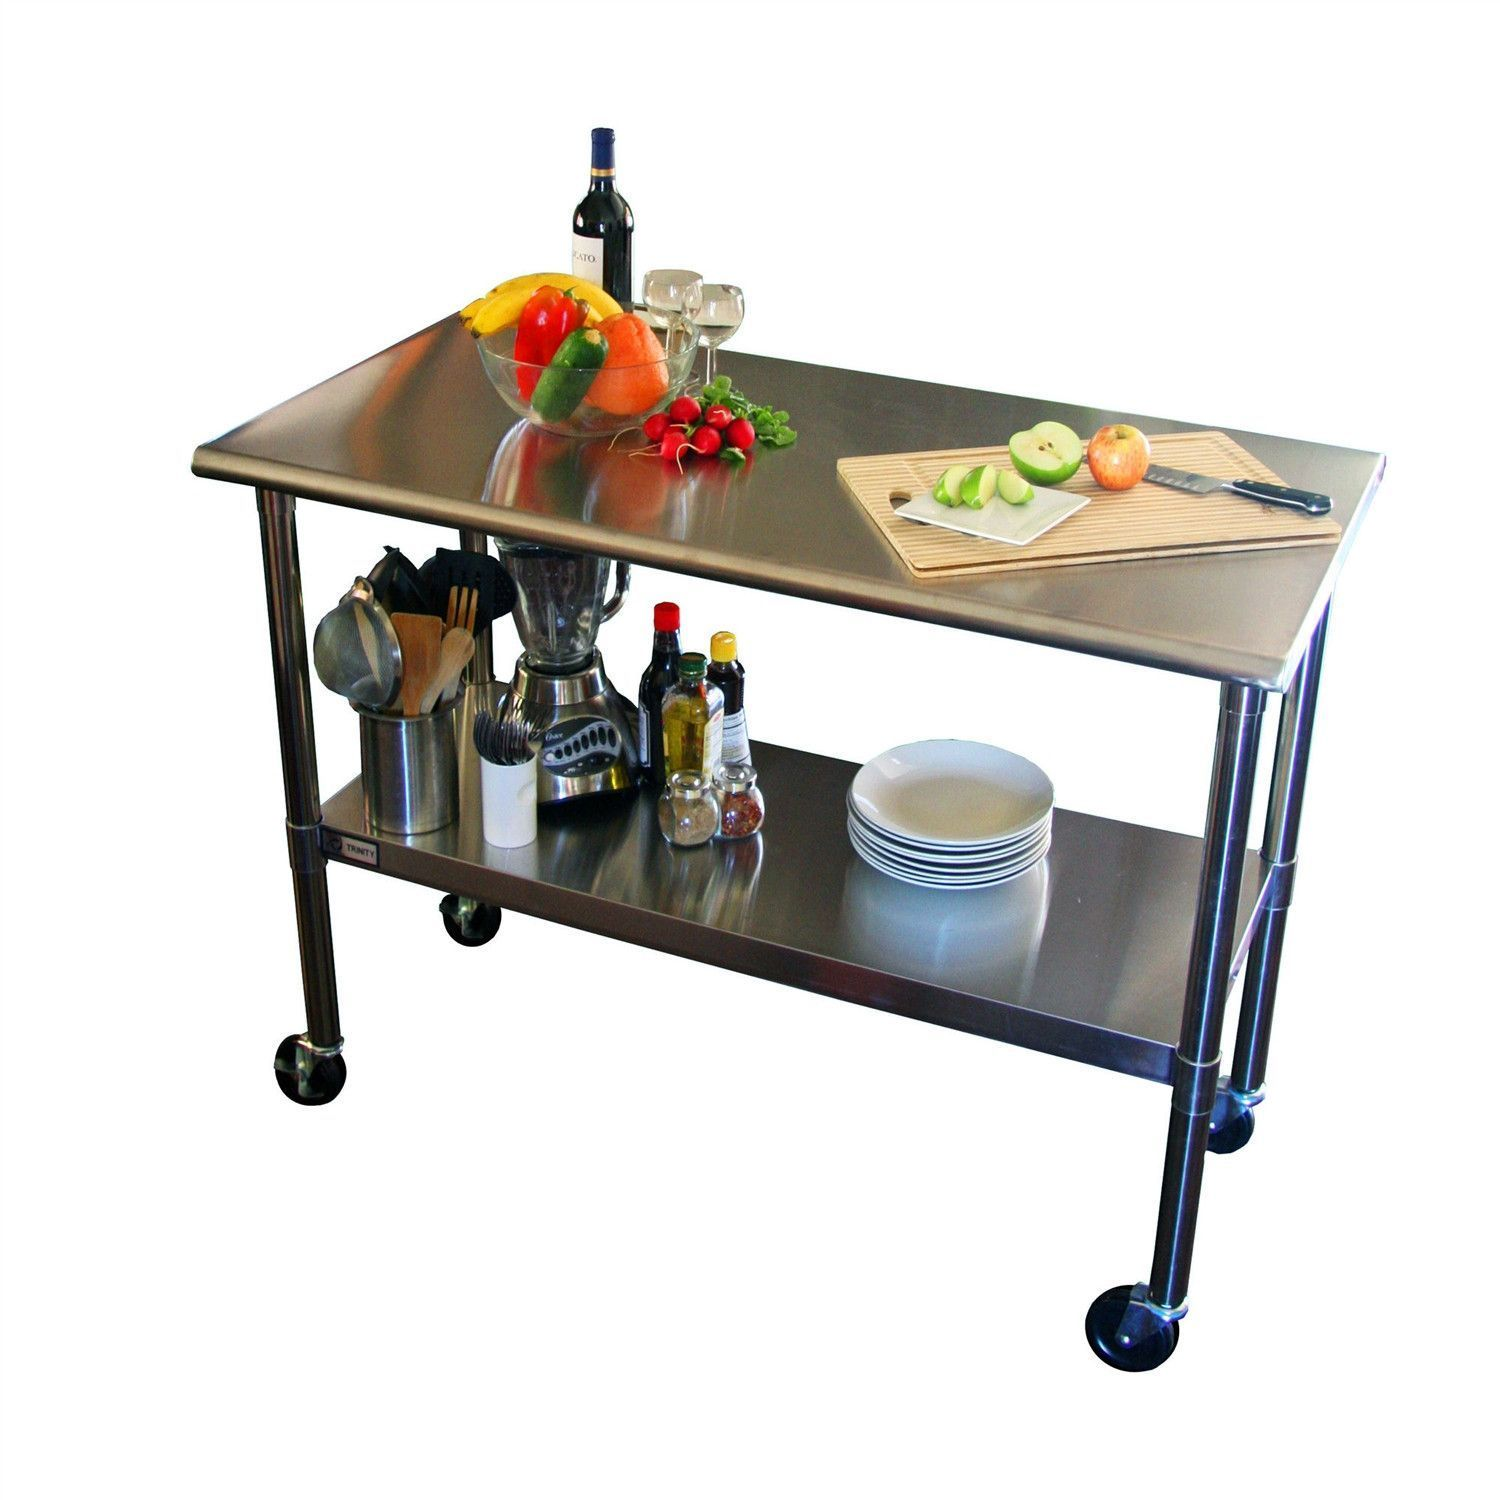 2ft x 4ft Stainless Steel Top Kitchen Prep Table with Locking ...